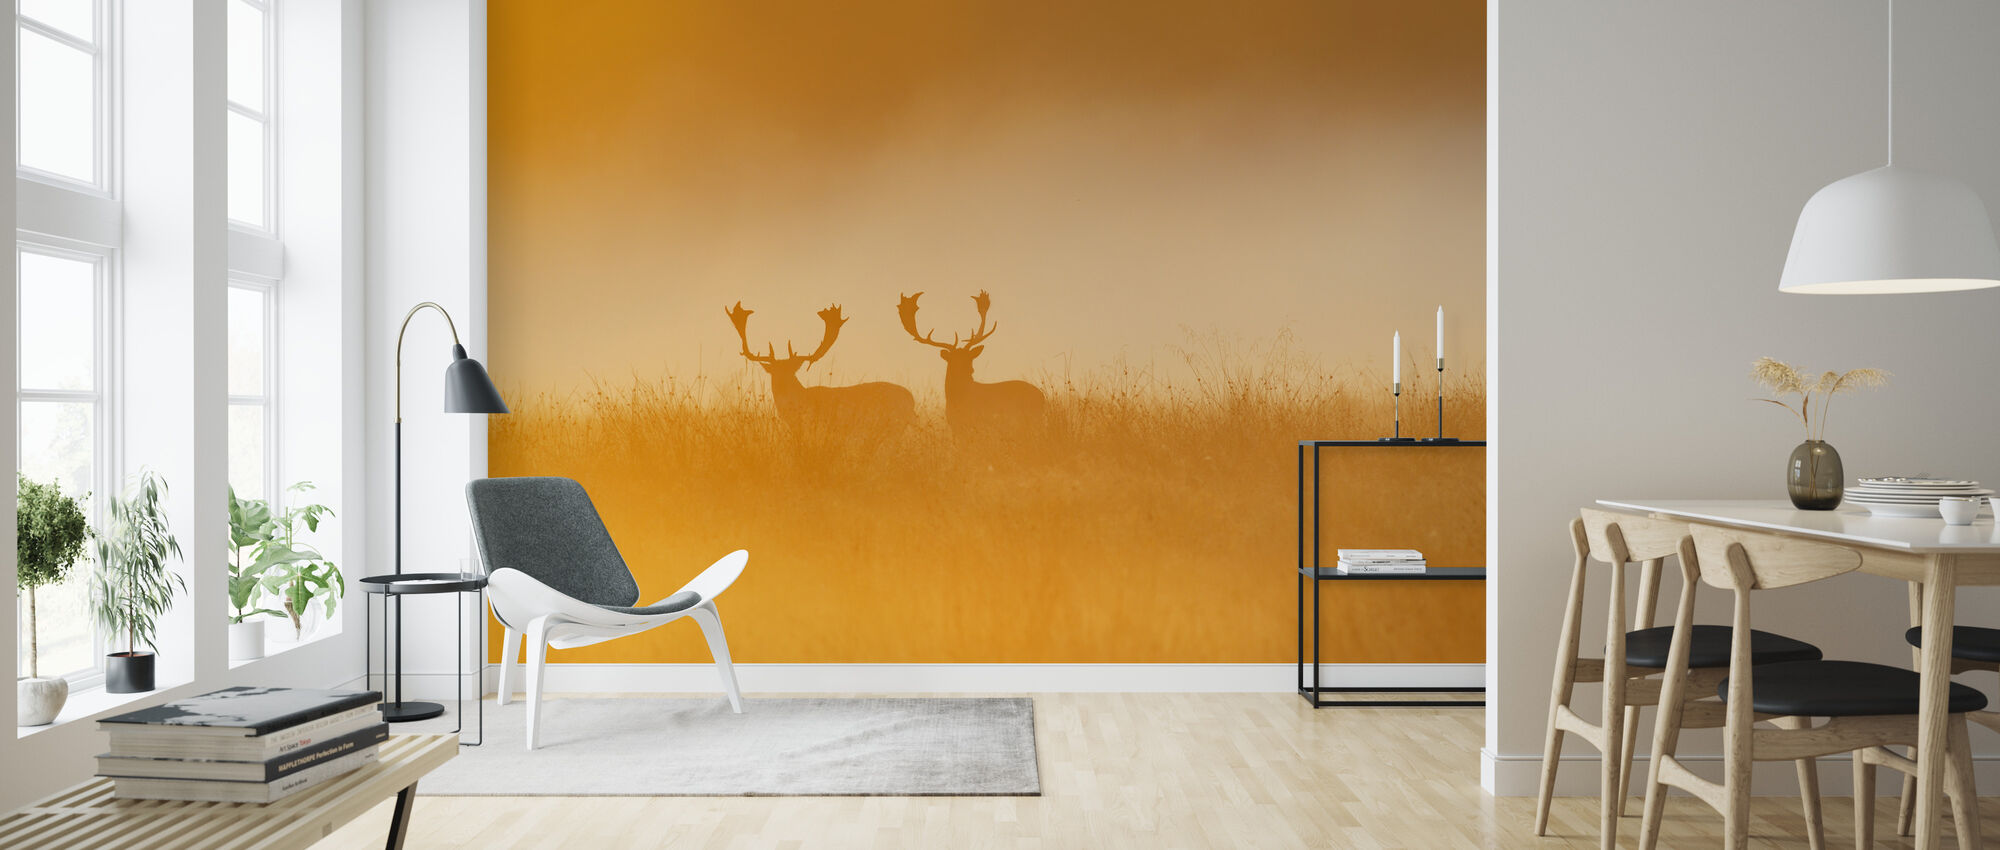 Deer in Yellow Light - Wallpaper - Living Room